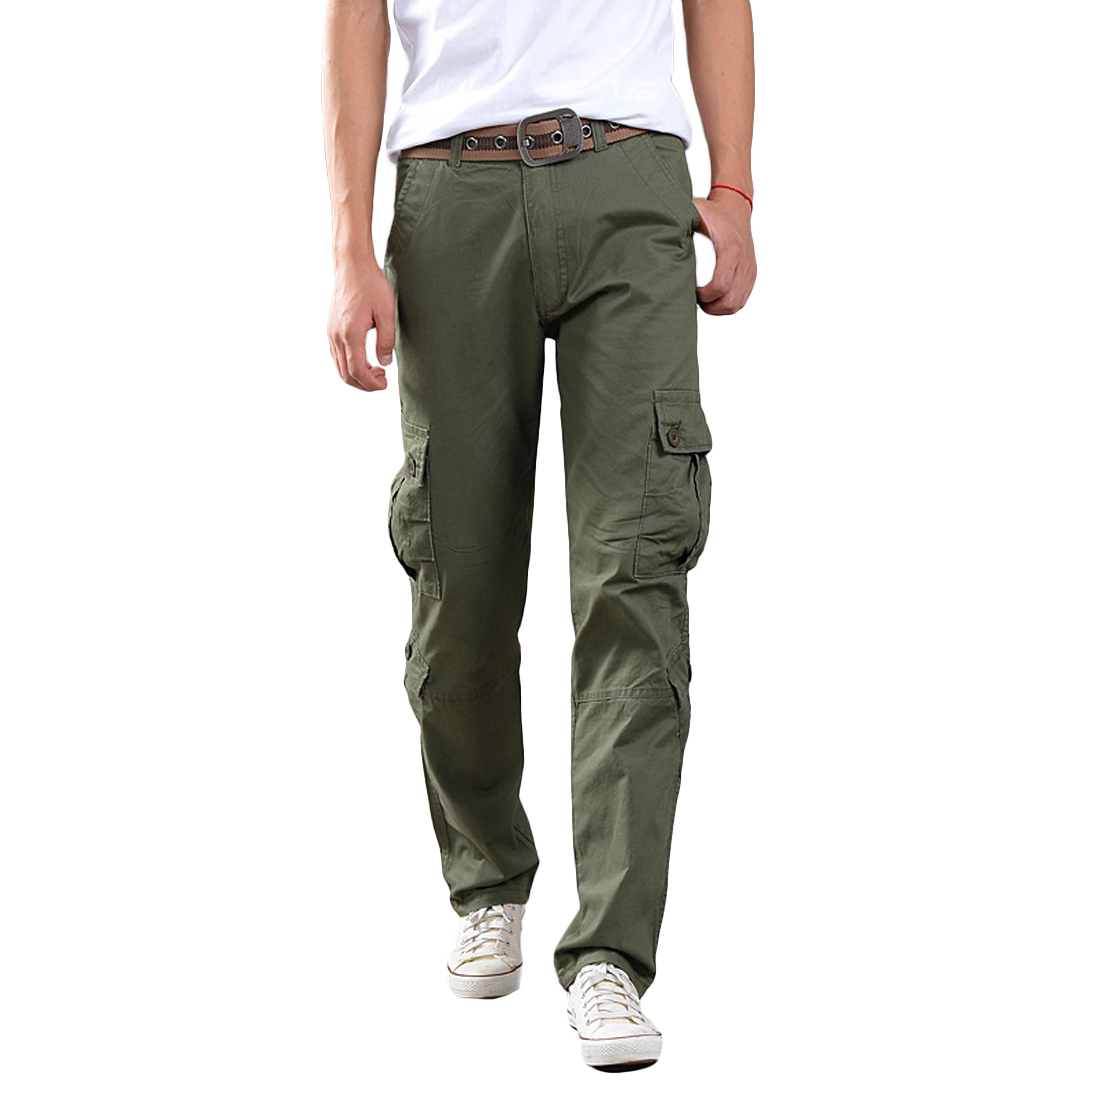 Mens Army Long Pant Combat Cotton Cargo Pants Military Solid Camo Trousers 4 Color Size 32-38 Loose More Pockets Safari Combat